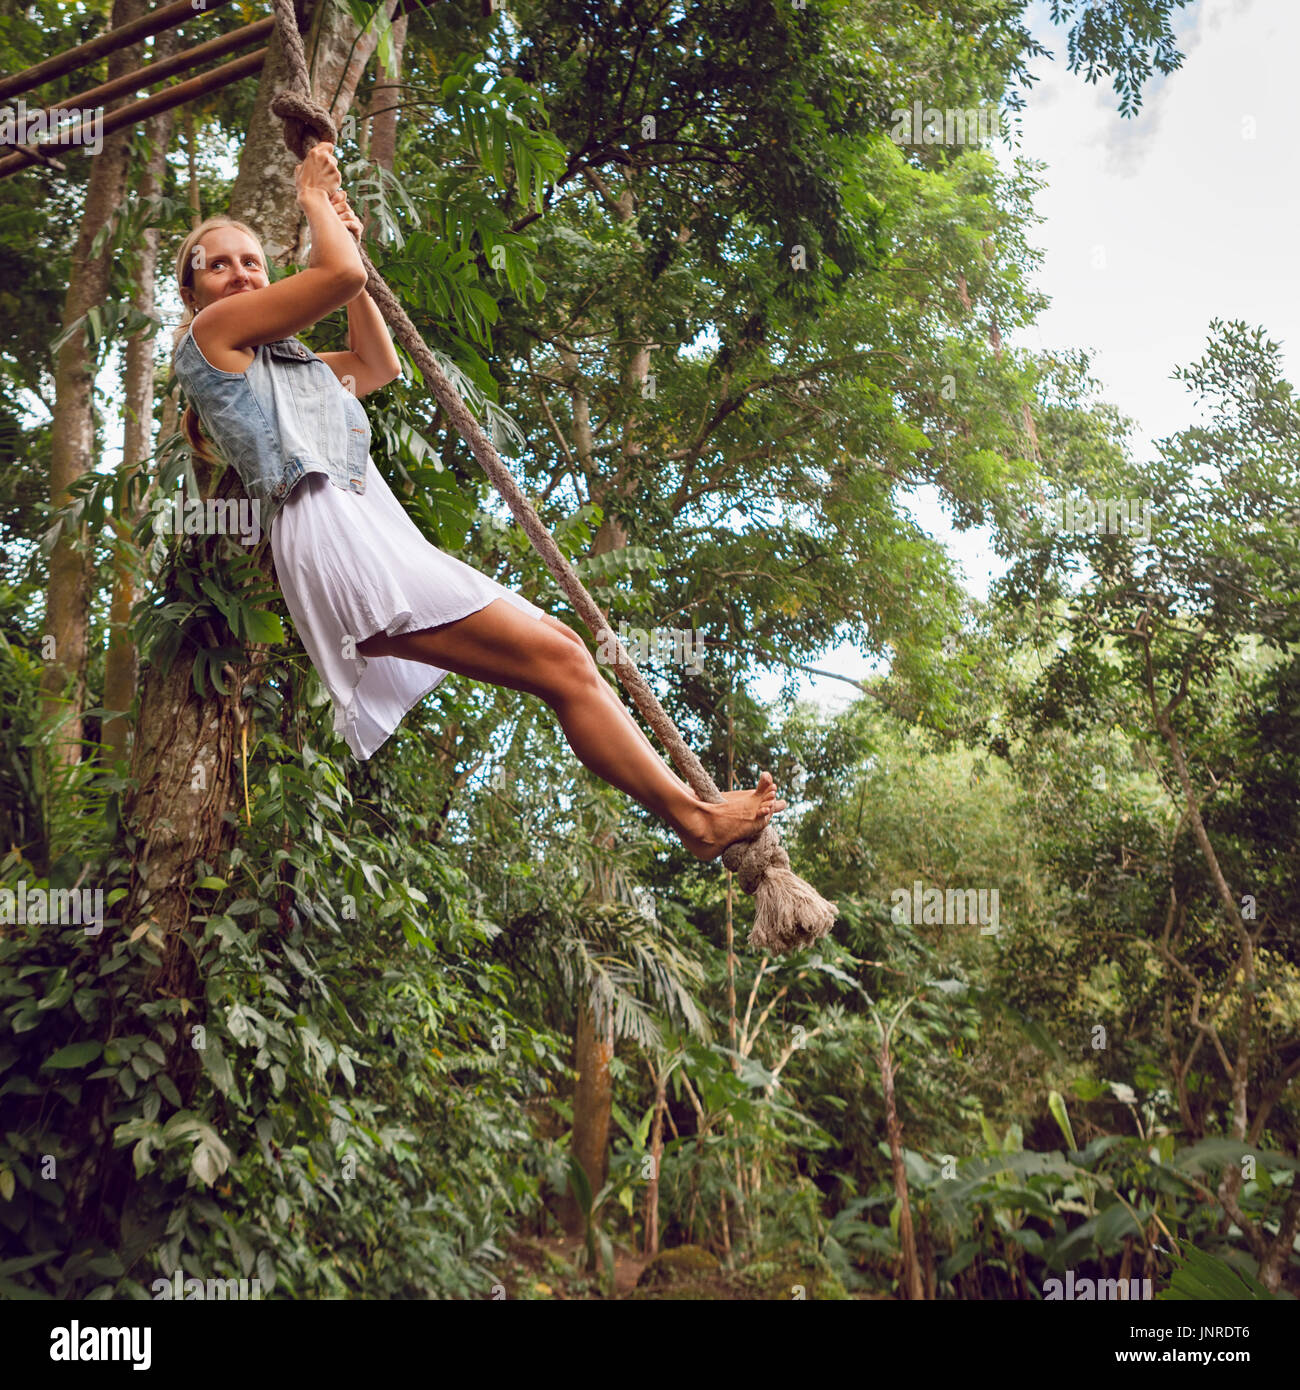 Family travel lifestyle. Happy young woman flying high with fun on rope swing on wild jungle background. Funny adventure Stock Photo